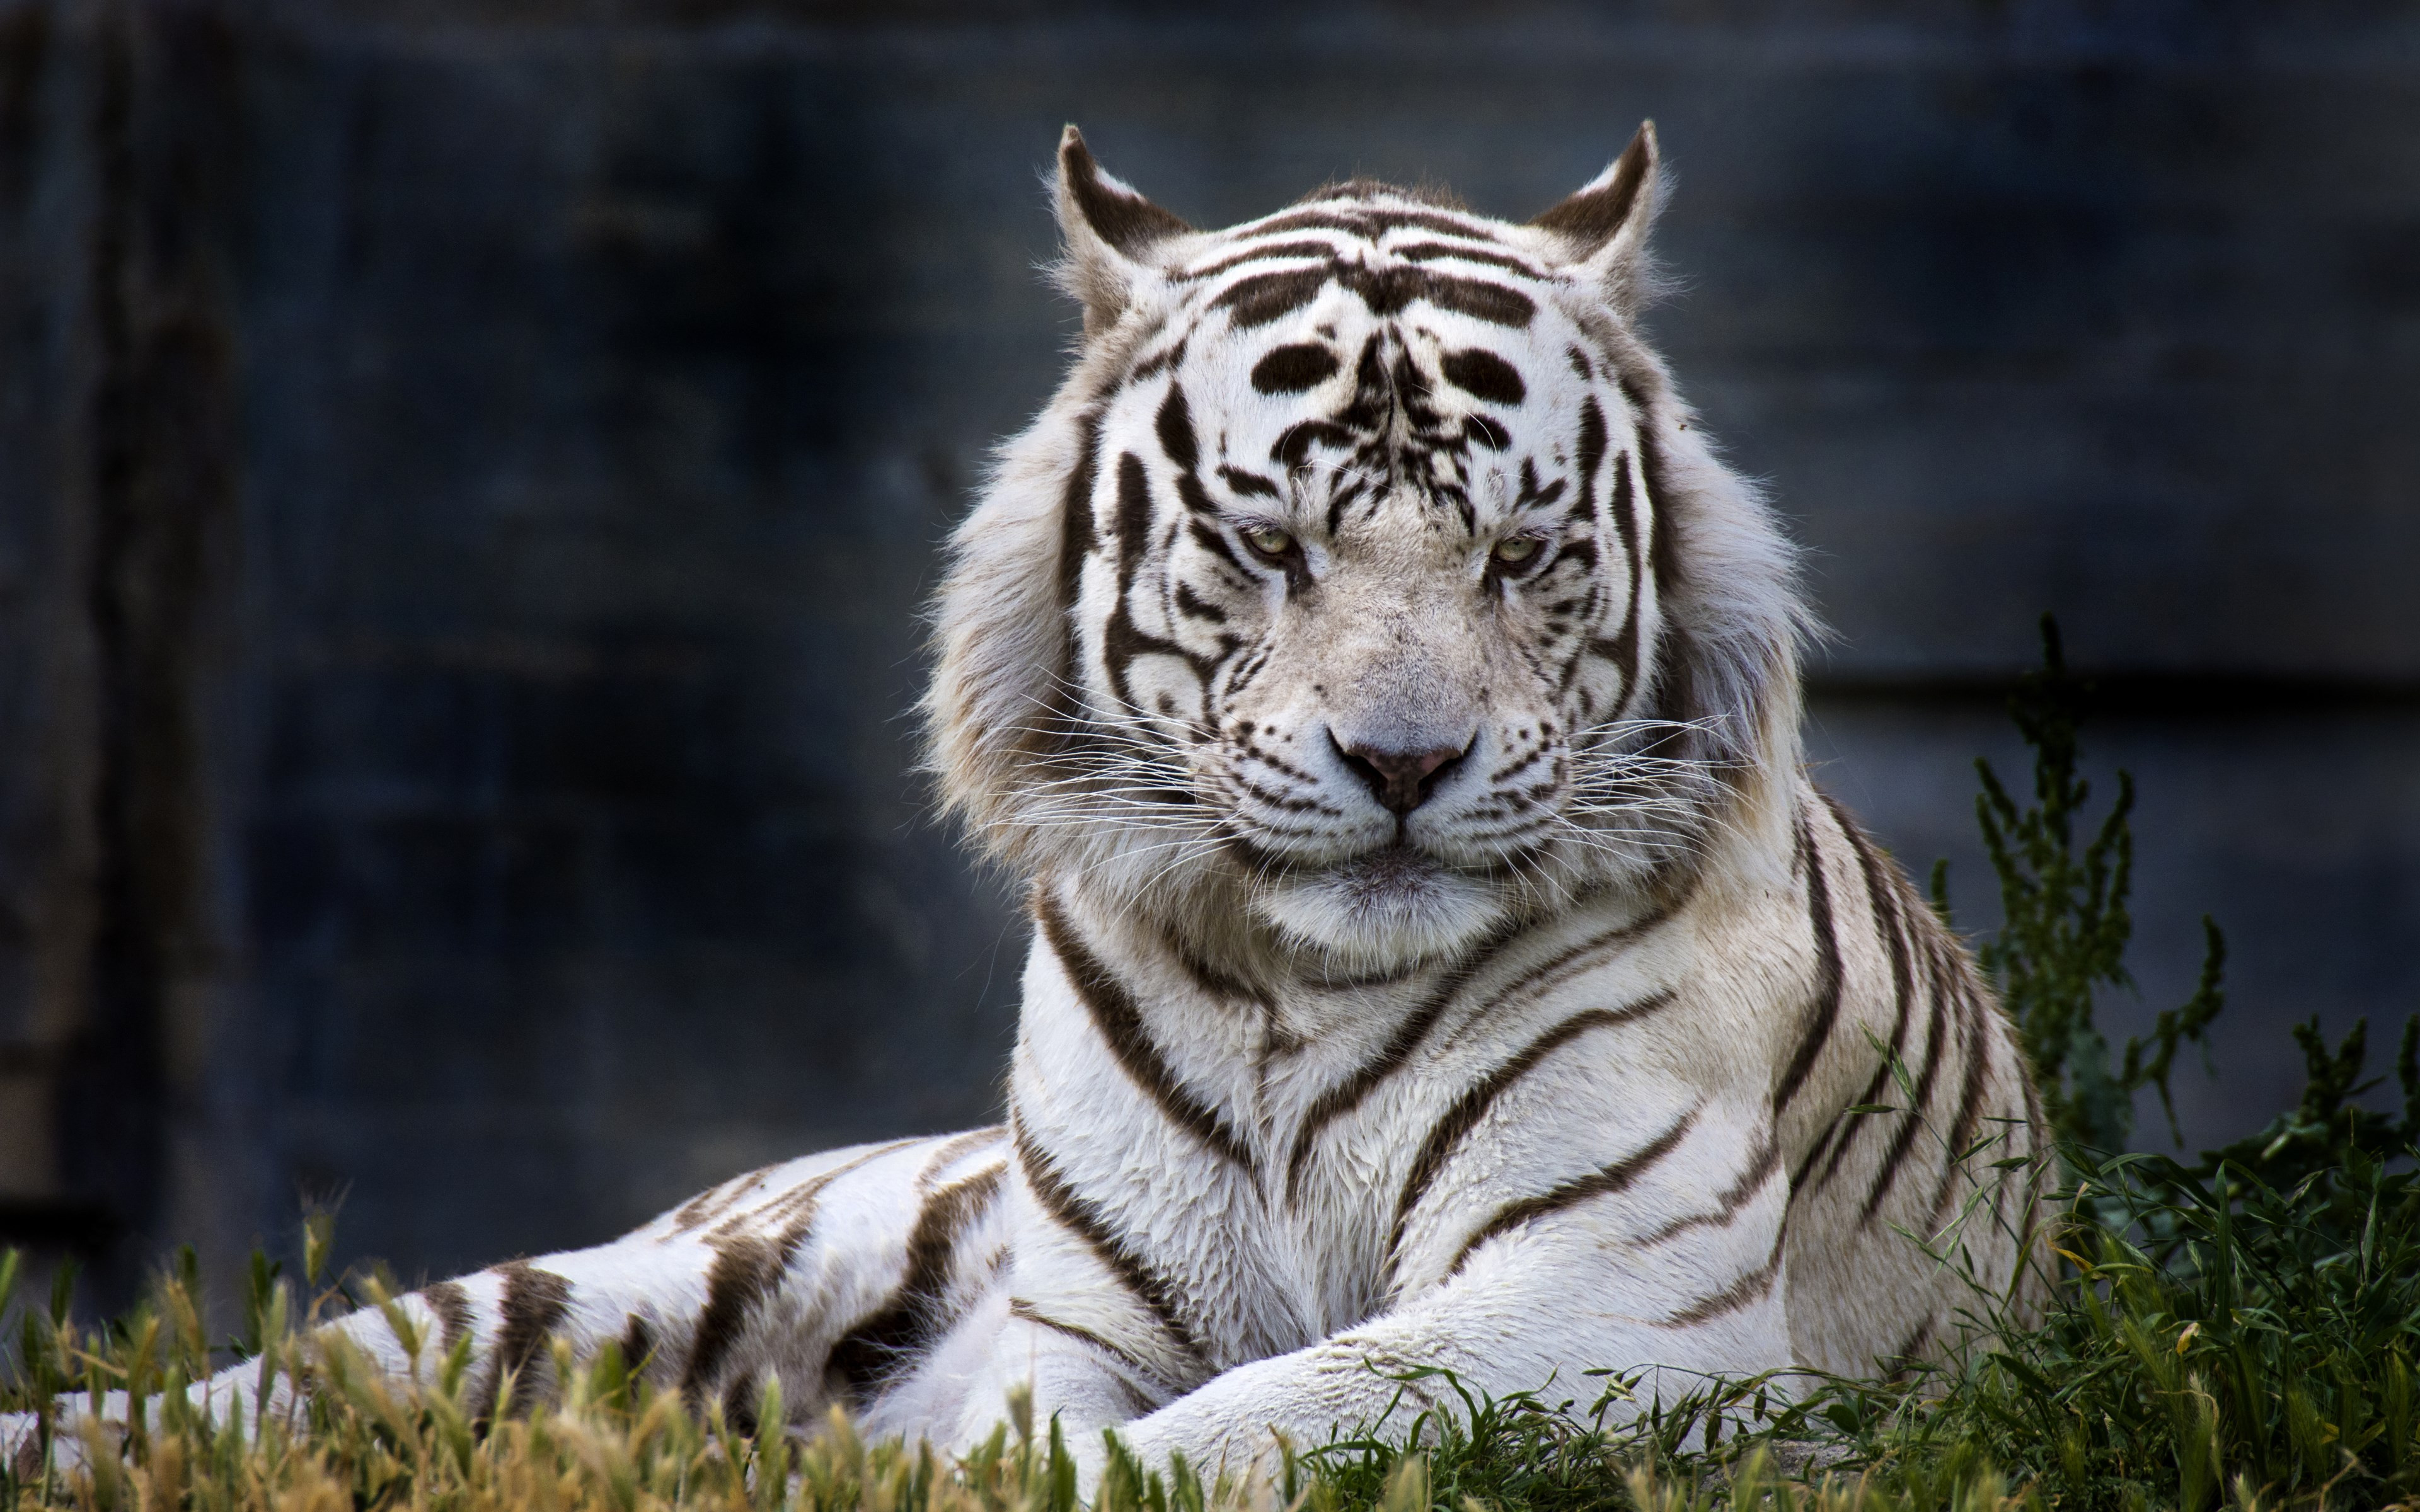 The white tiger from Madrid Zoo | 3840x2400 wallpaper